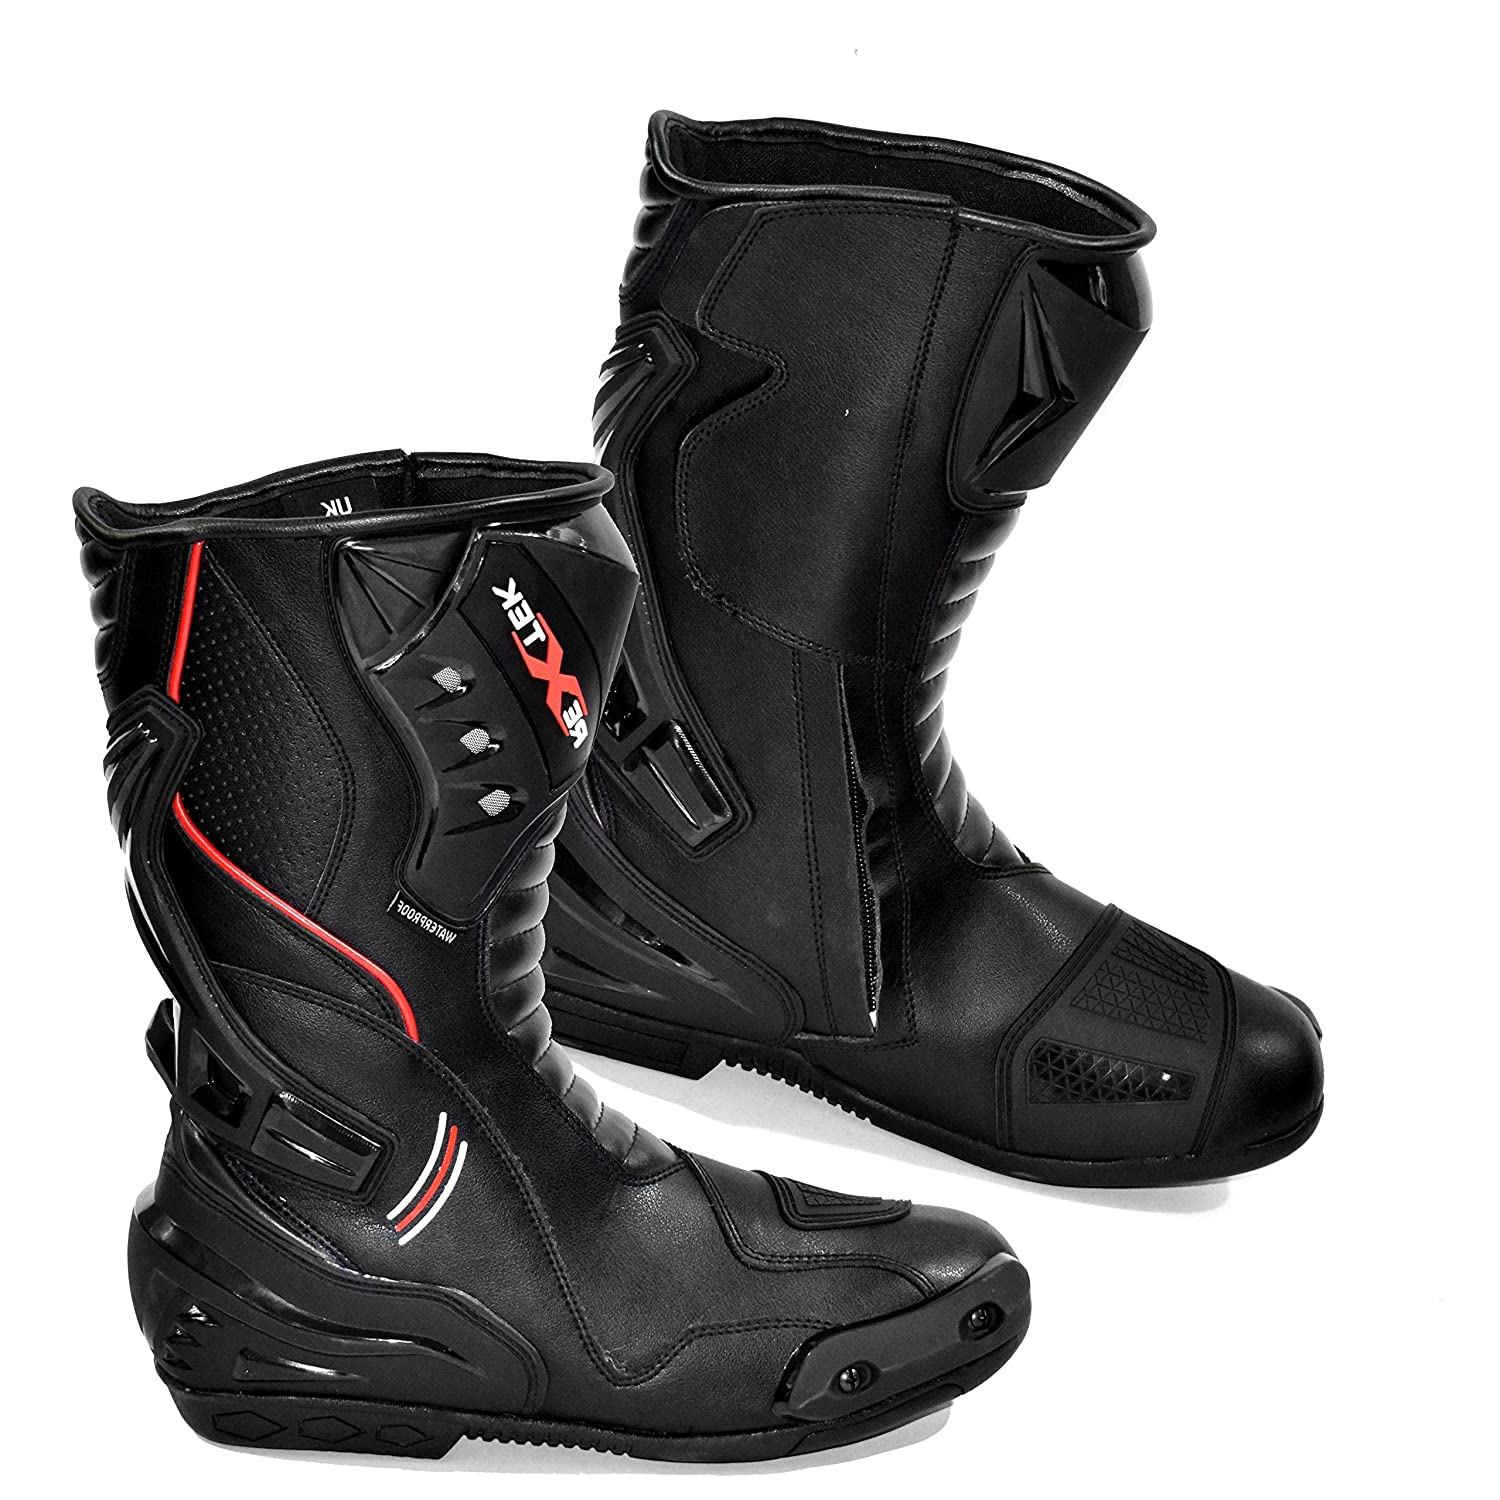 Blue /& Black Motorcycle Armoured Leather Boot Touring Racing Sports Shoes for All Weather with Anti Skid Rubber Sole Motorbike Boots Mens UK 11 // EU 45